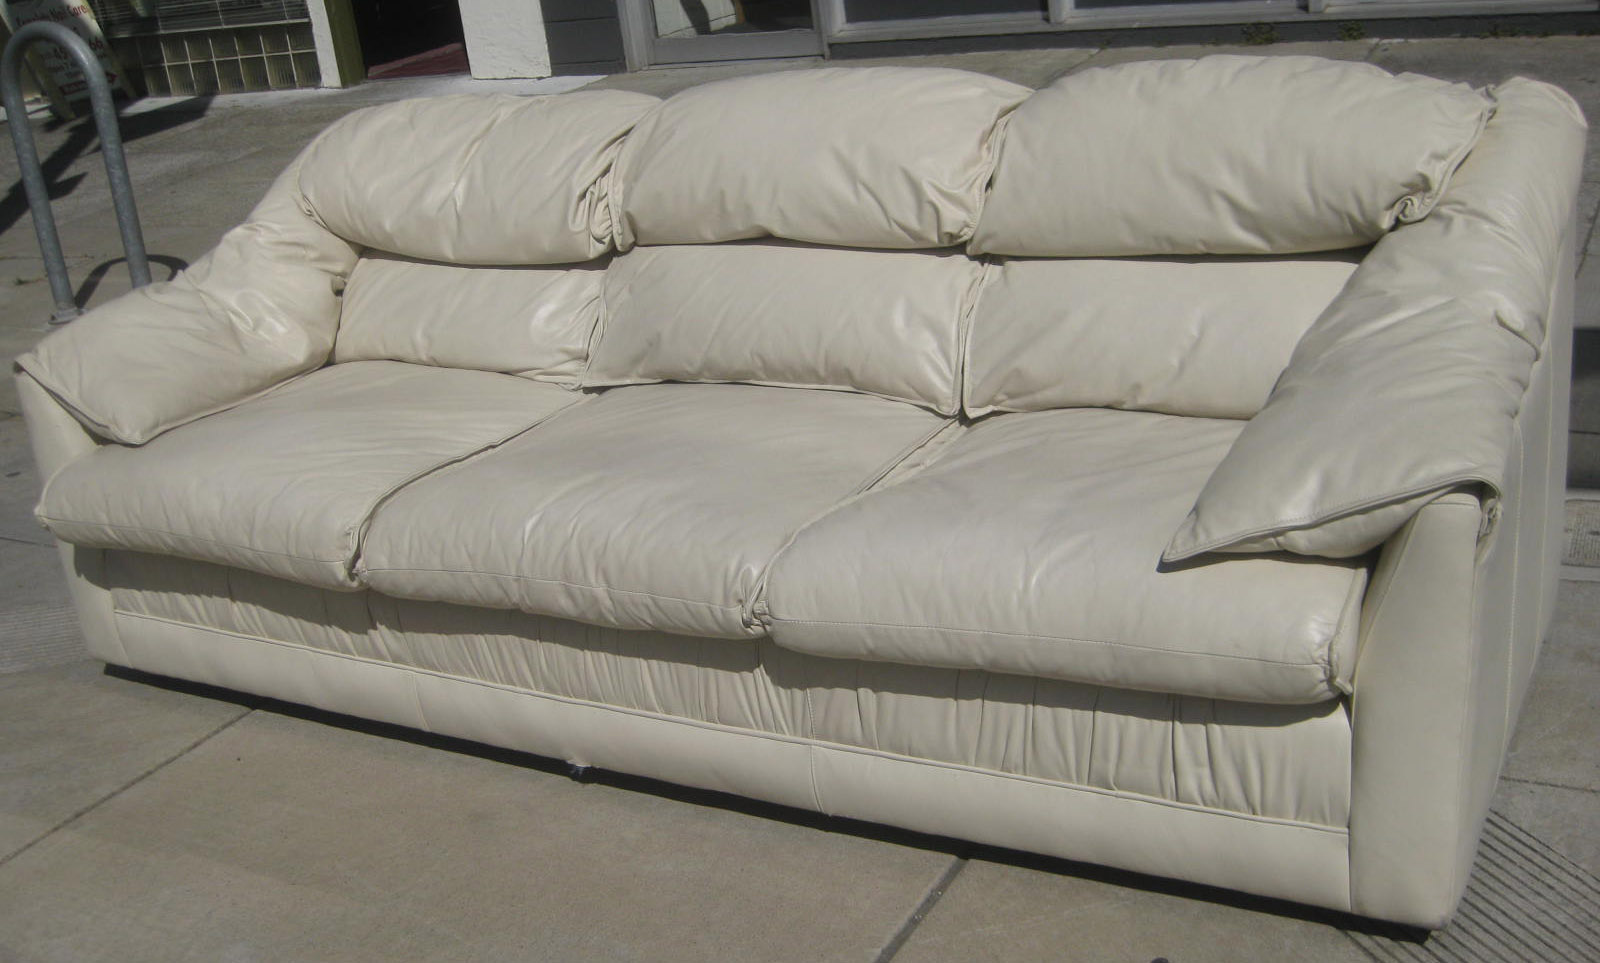 uhuru furniture collectibles sold white leather sofa